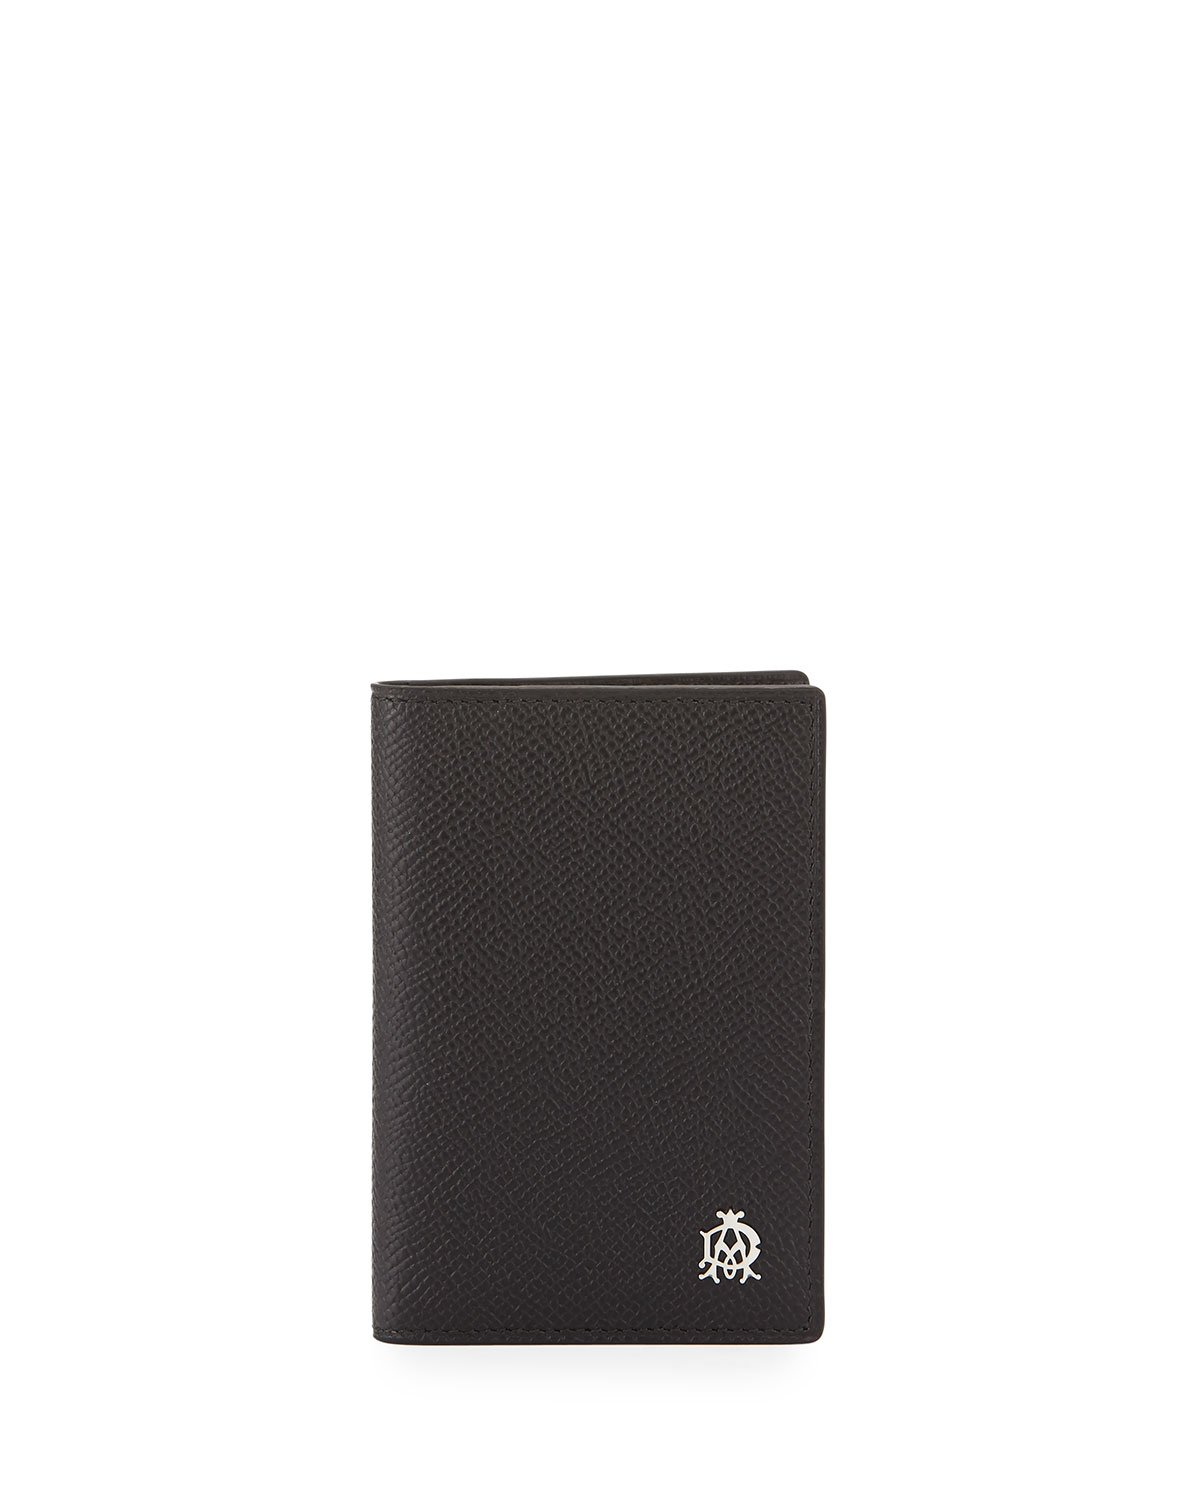 Lyst - Dunhill Bourdon Leather Business Card Case in Black for Men